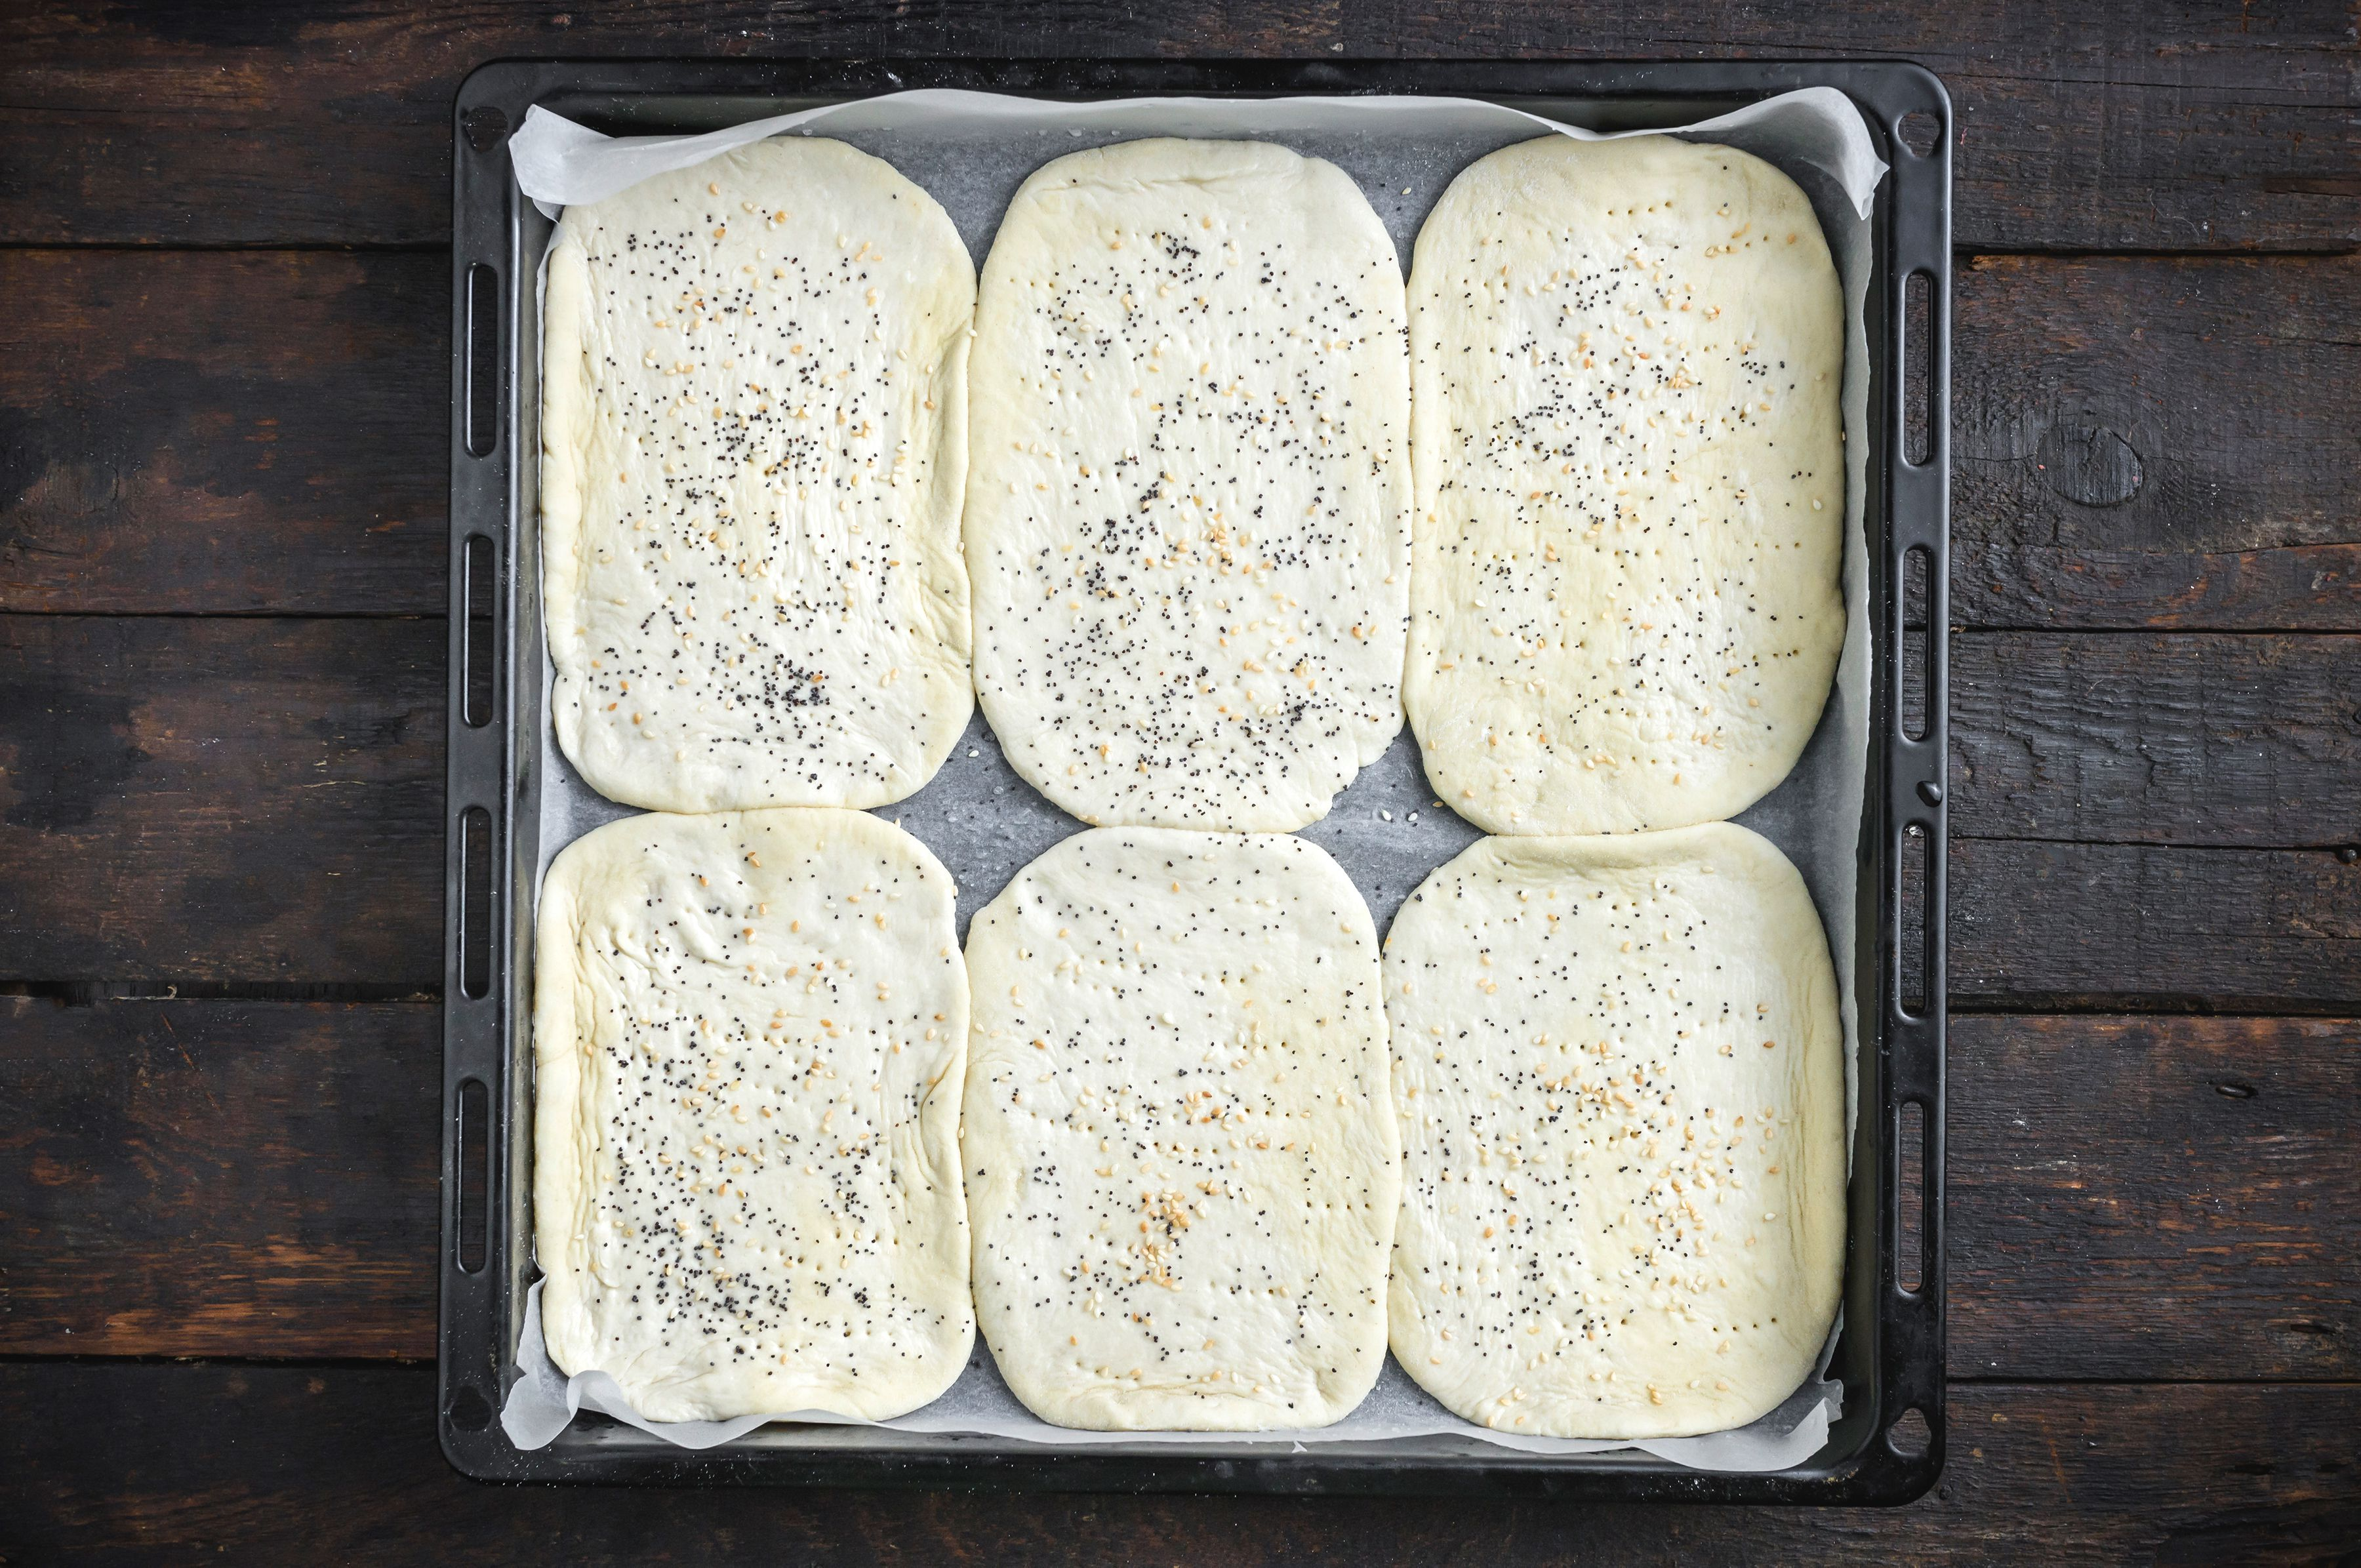 Brush dough with oil and sprinkle with poppy seeds and sesame seeds